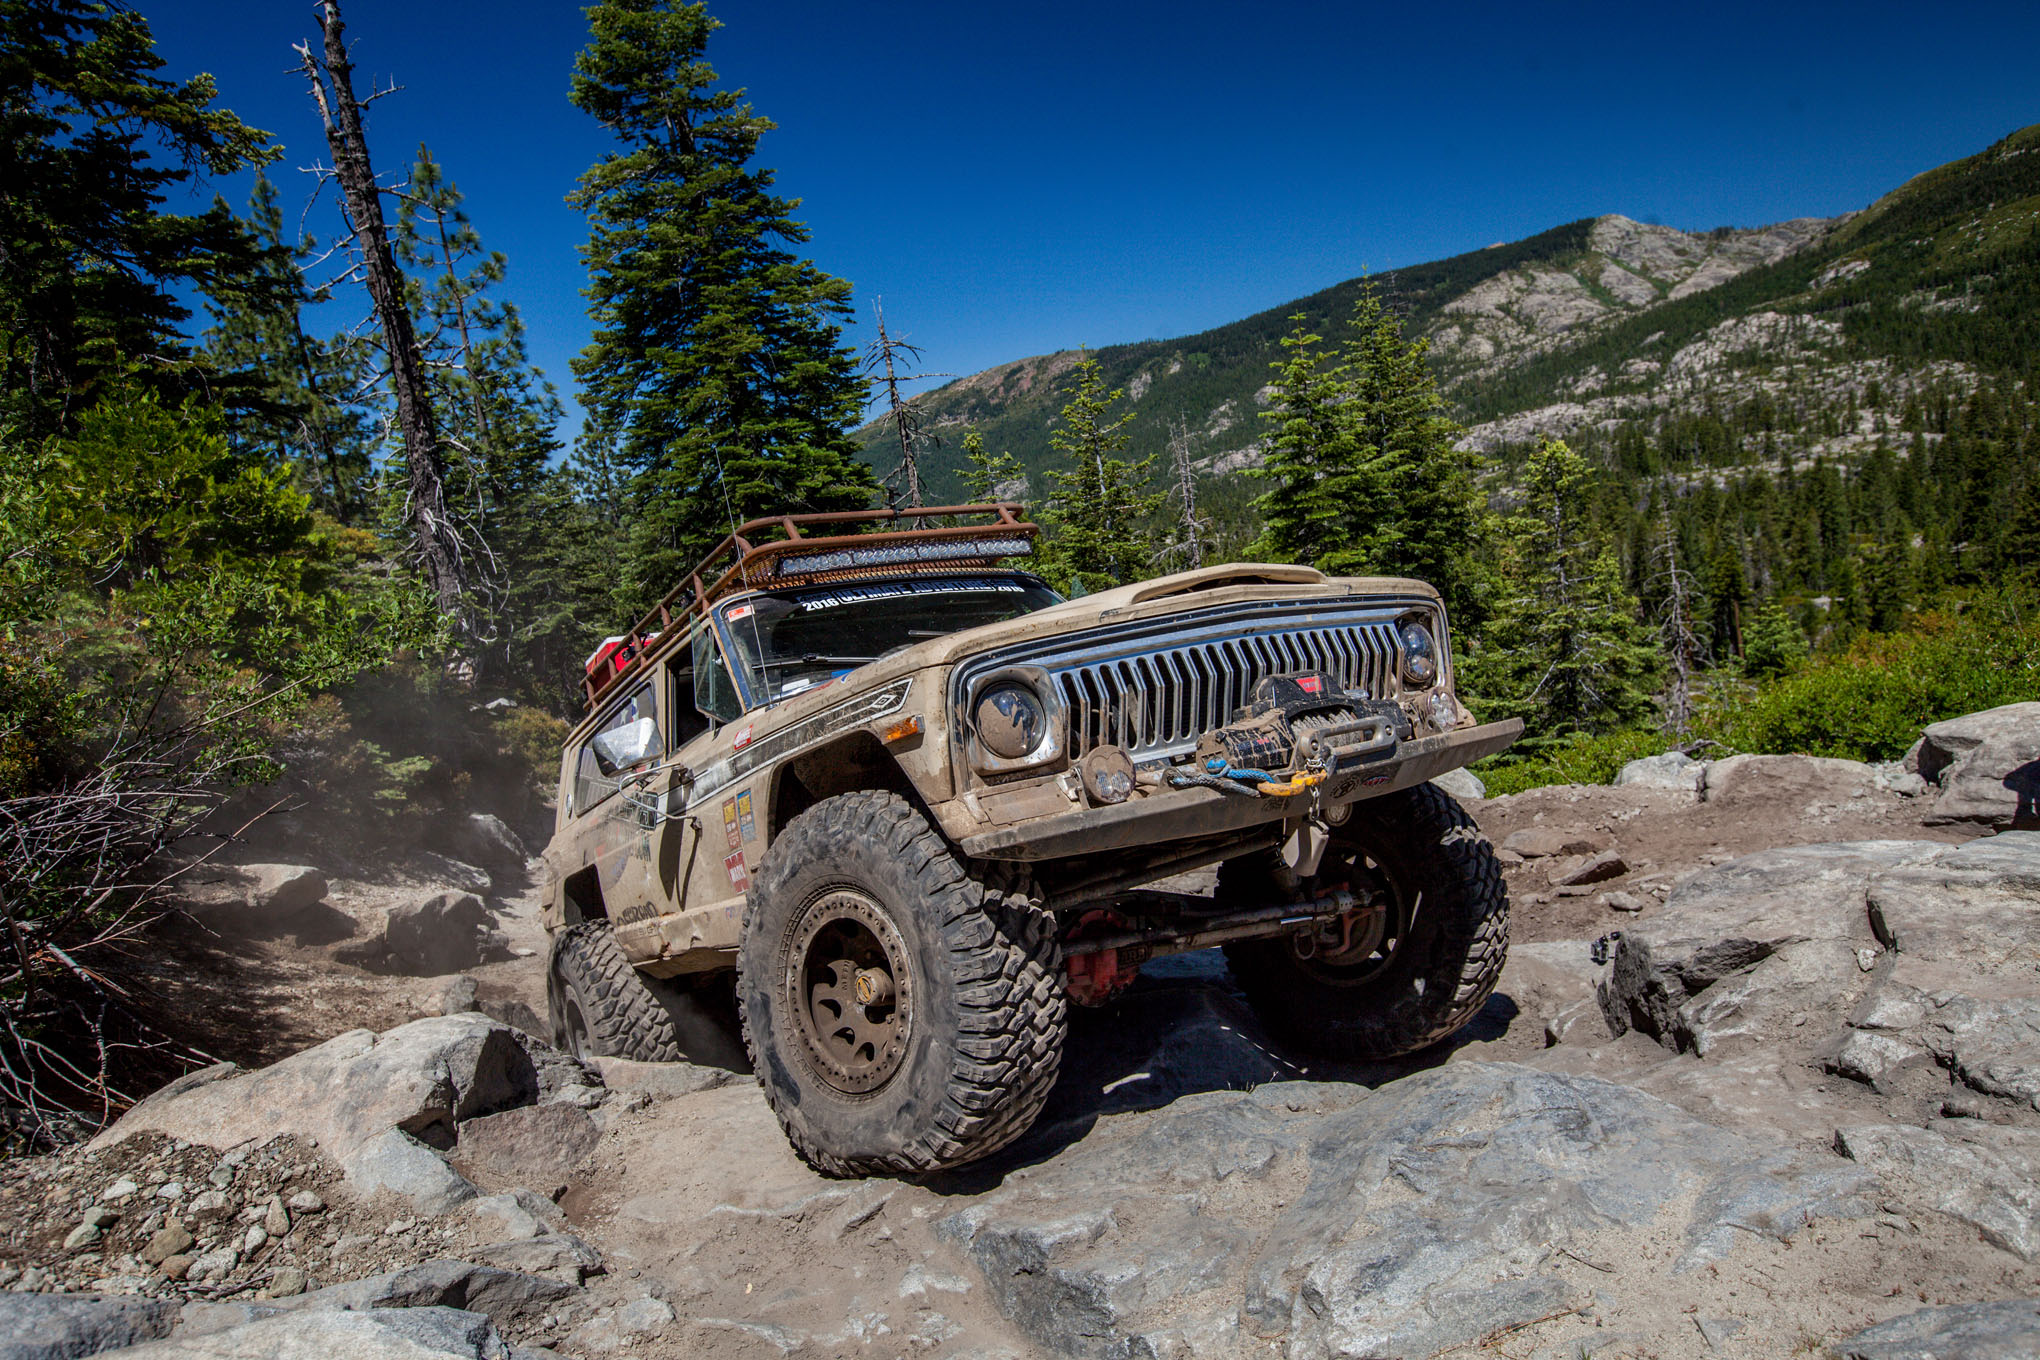 009 2016 Ultimate Adventure vehicles and people